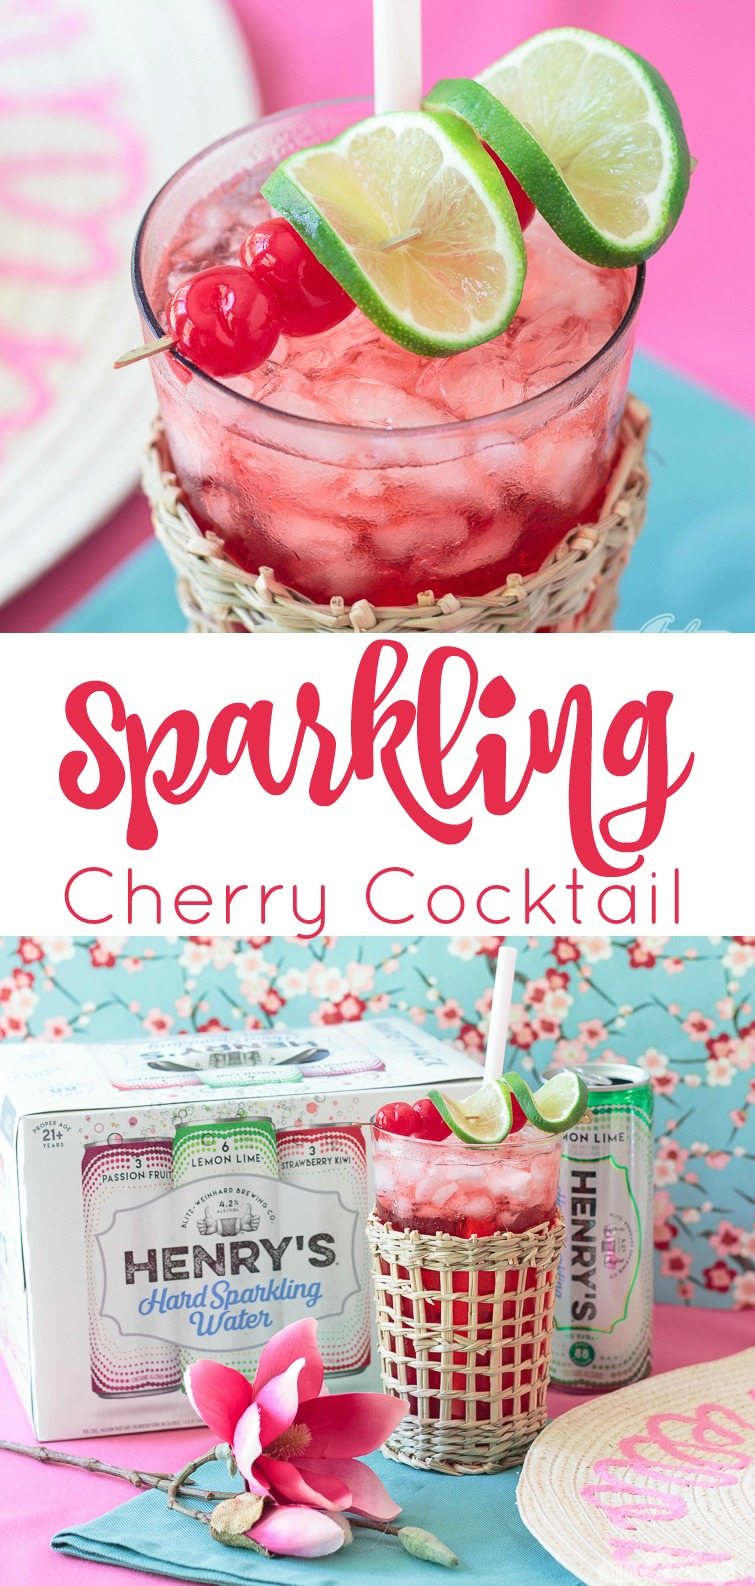 sparkling cherry cocktail made with lemon lime spiked sparkling water, cherry schnapps and vanilla vodka